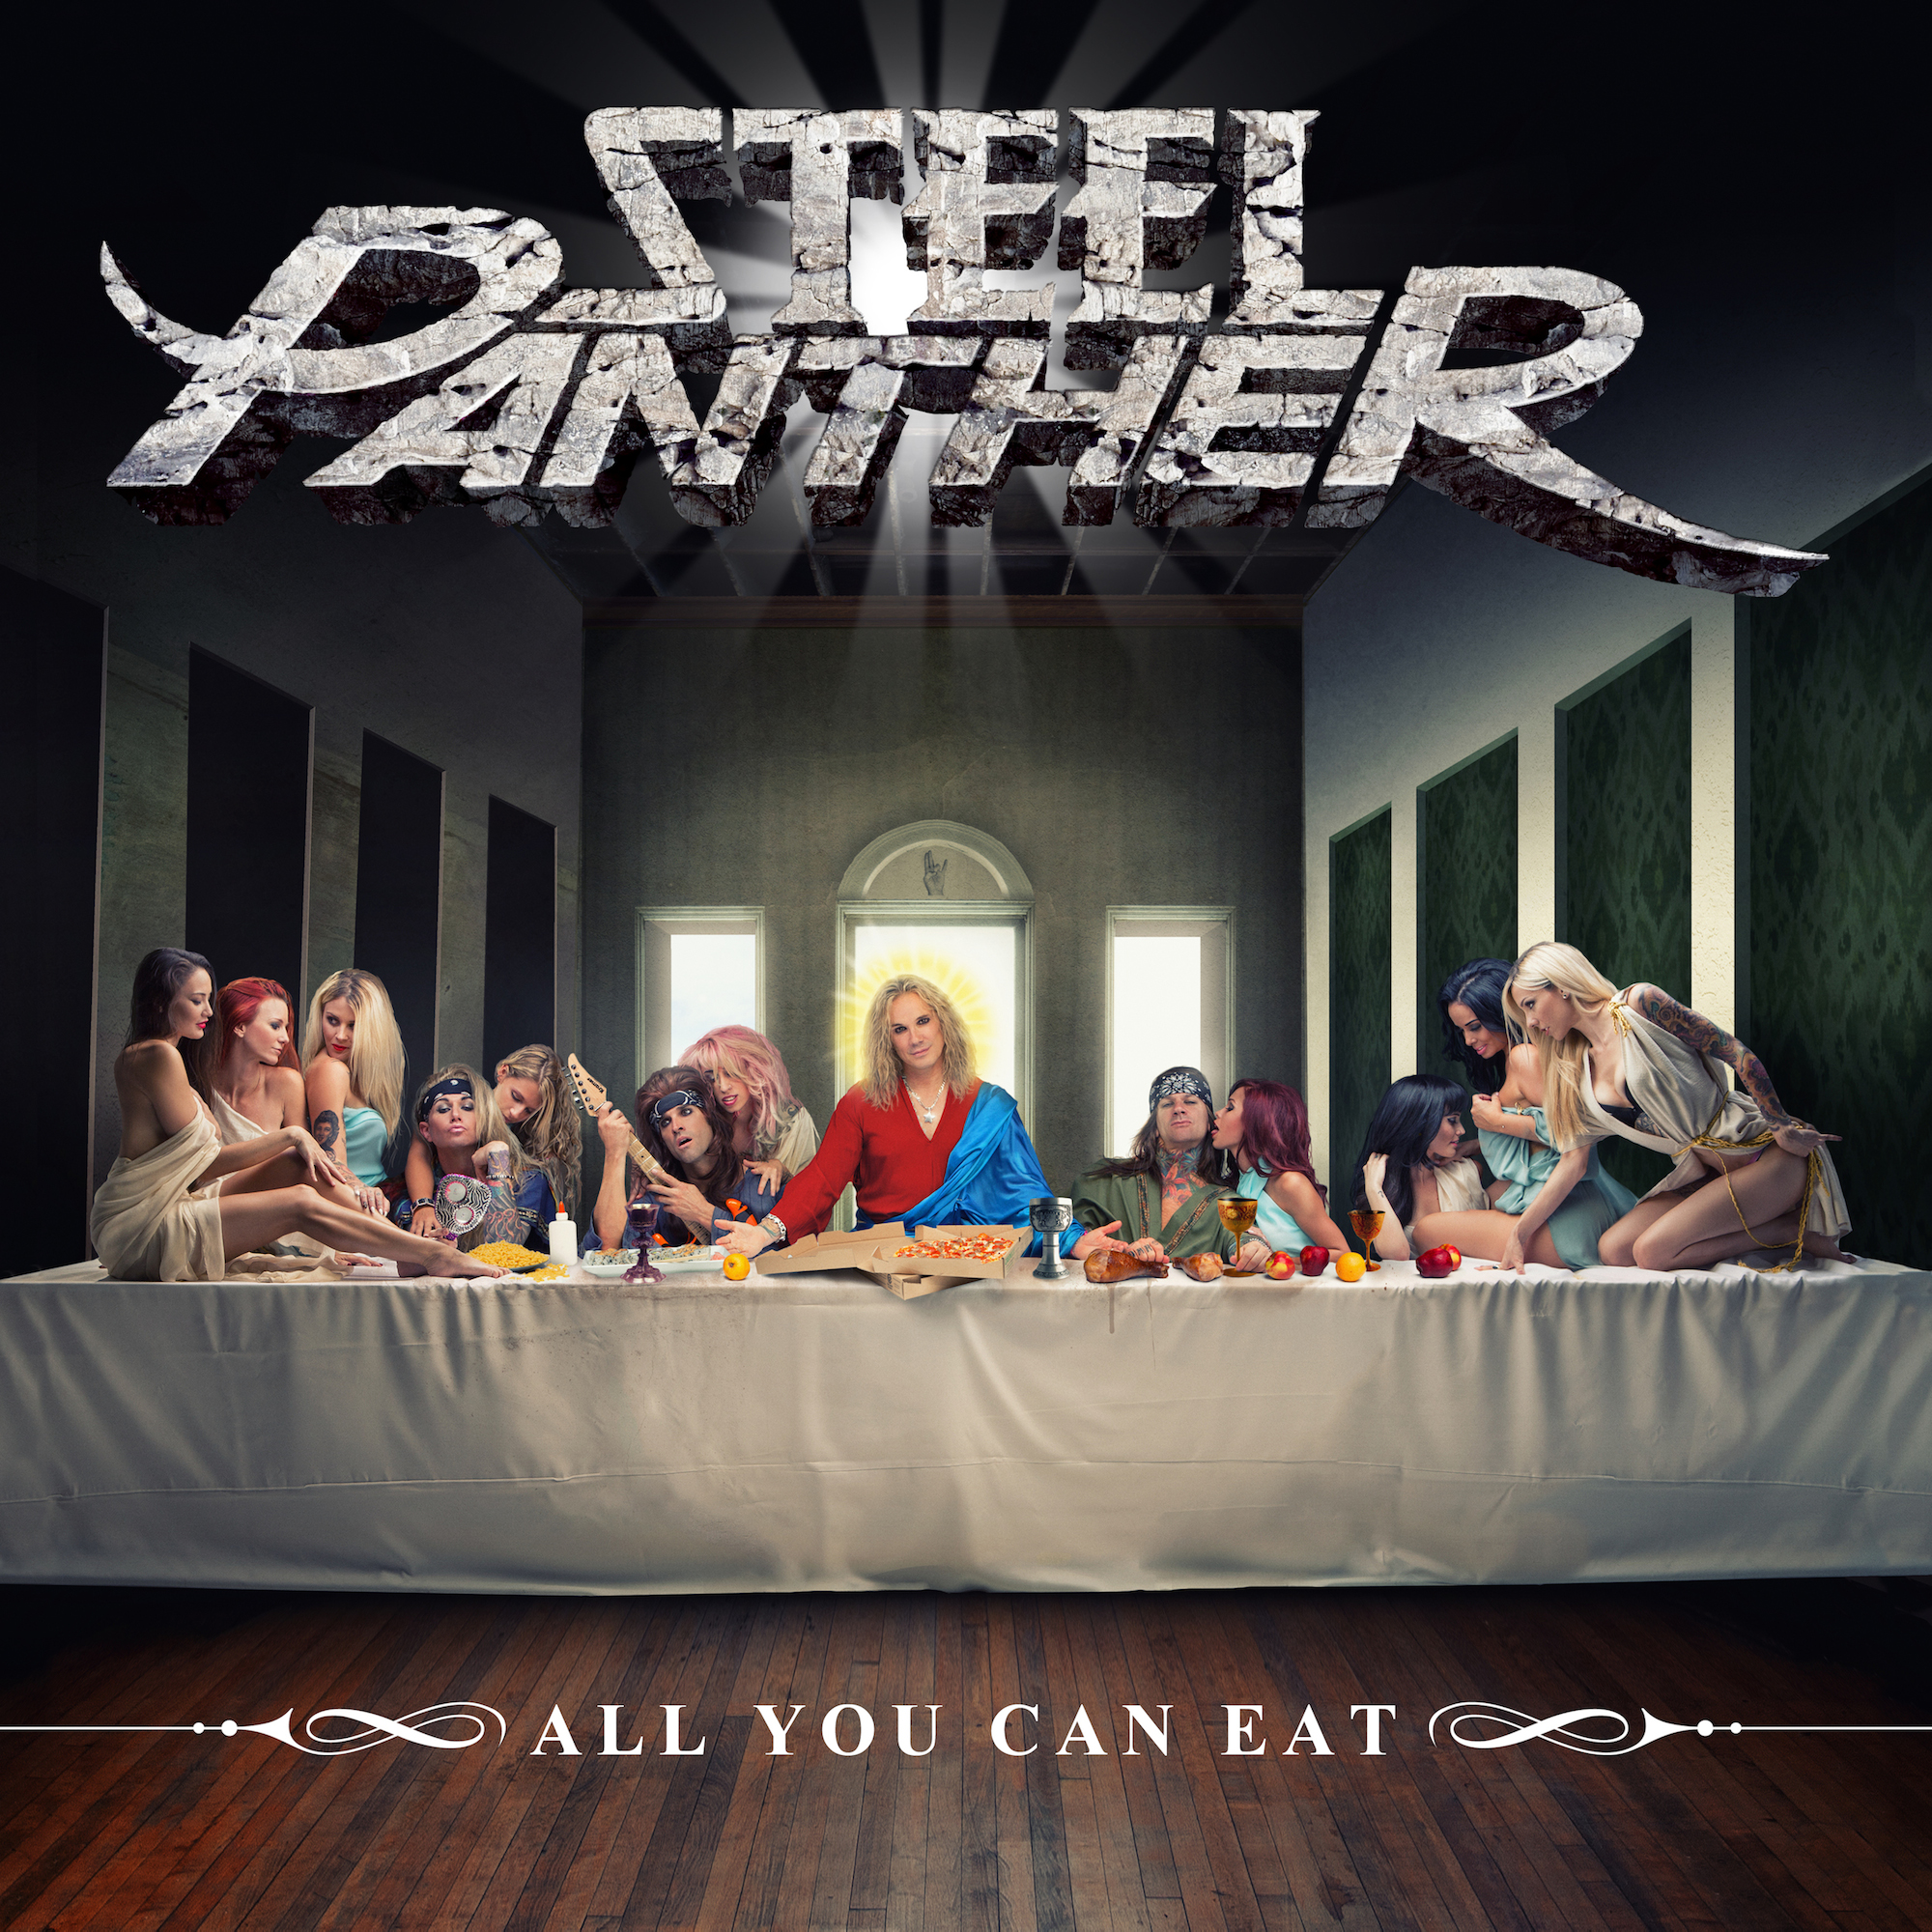 25032016: Ultima cena Steel Panther